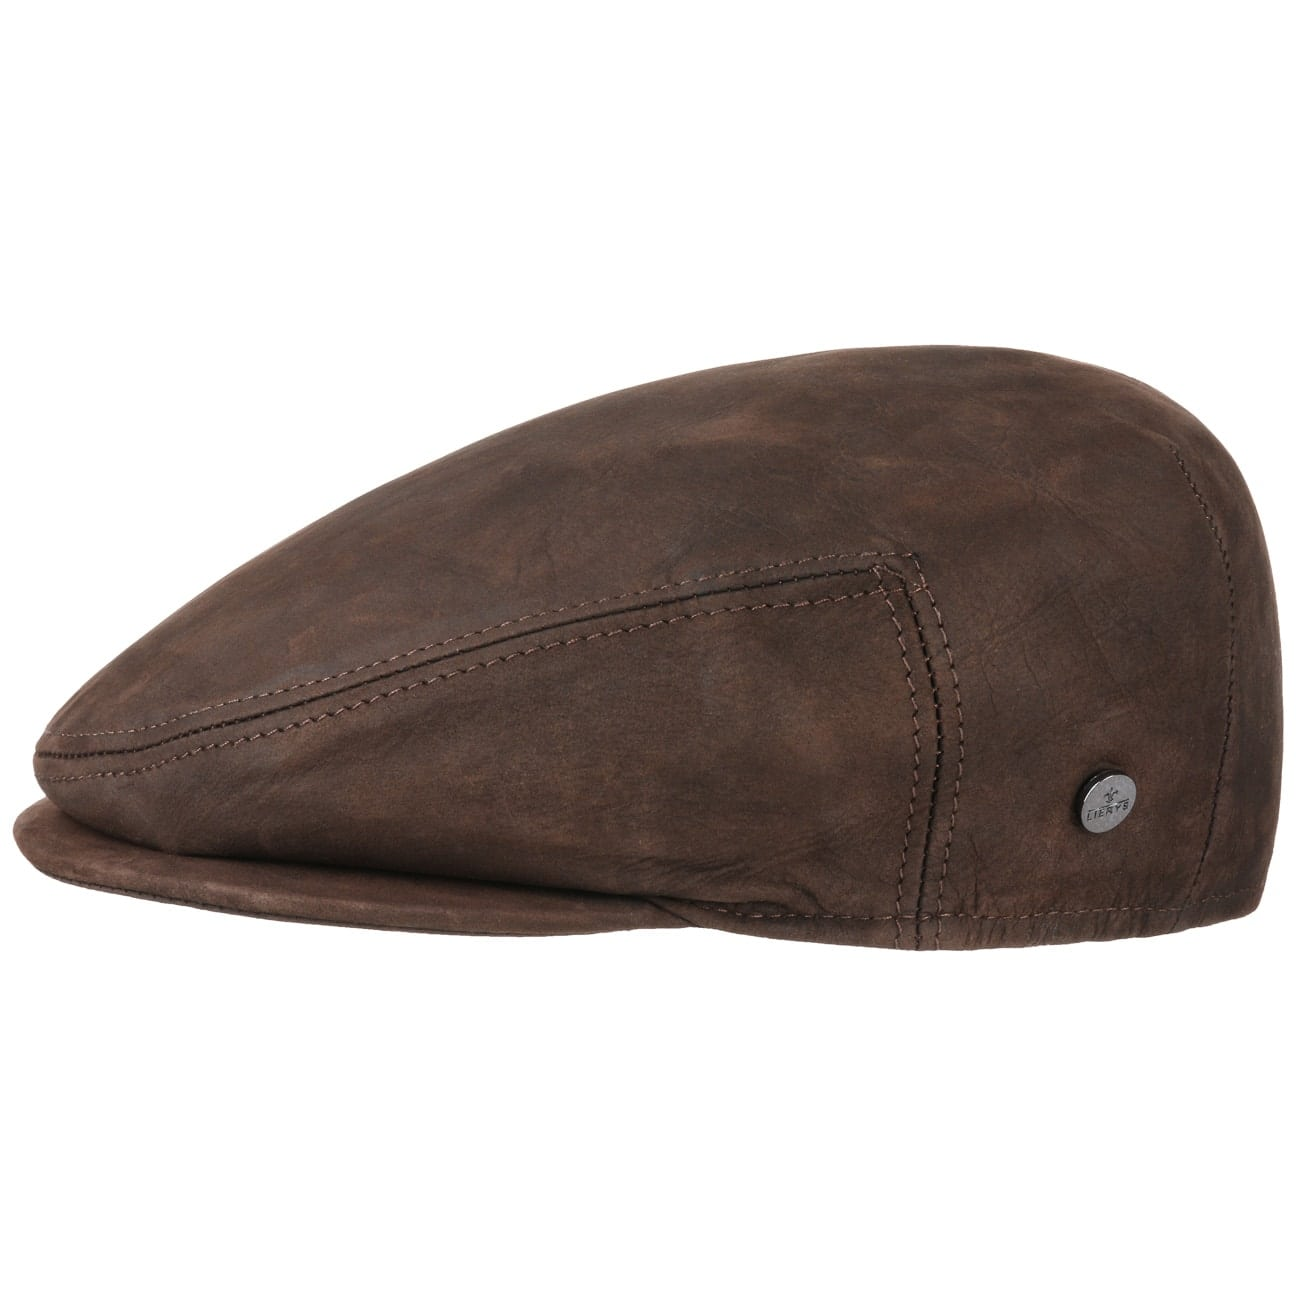 Find great deals on eBay for leather flat hats. Shop with confidence.